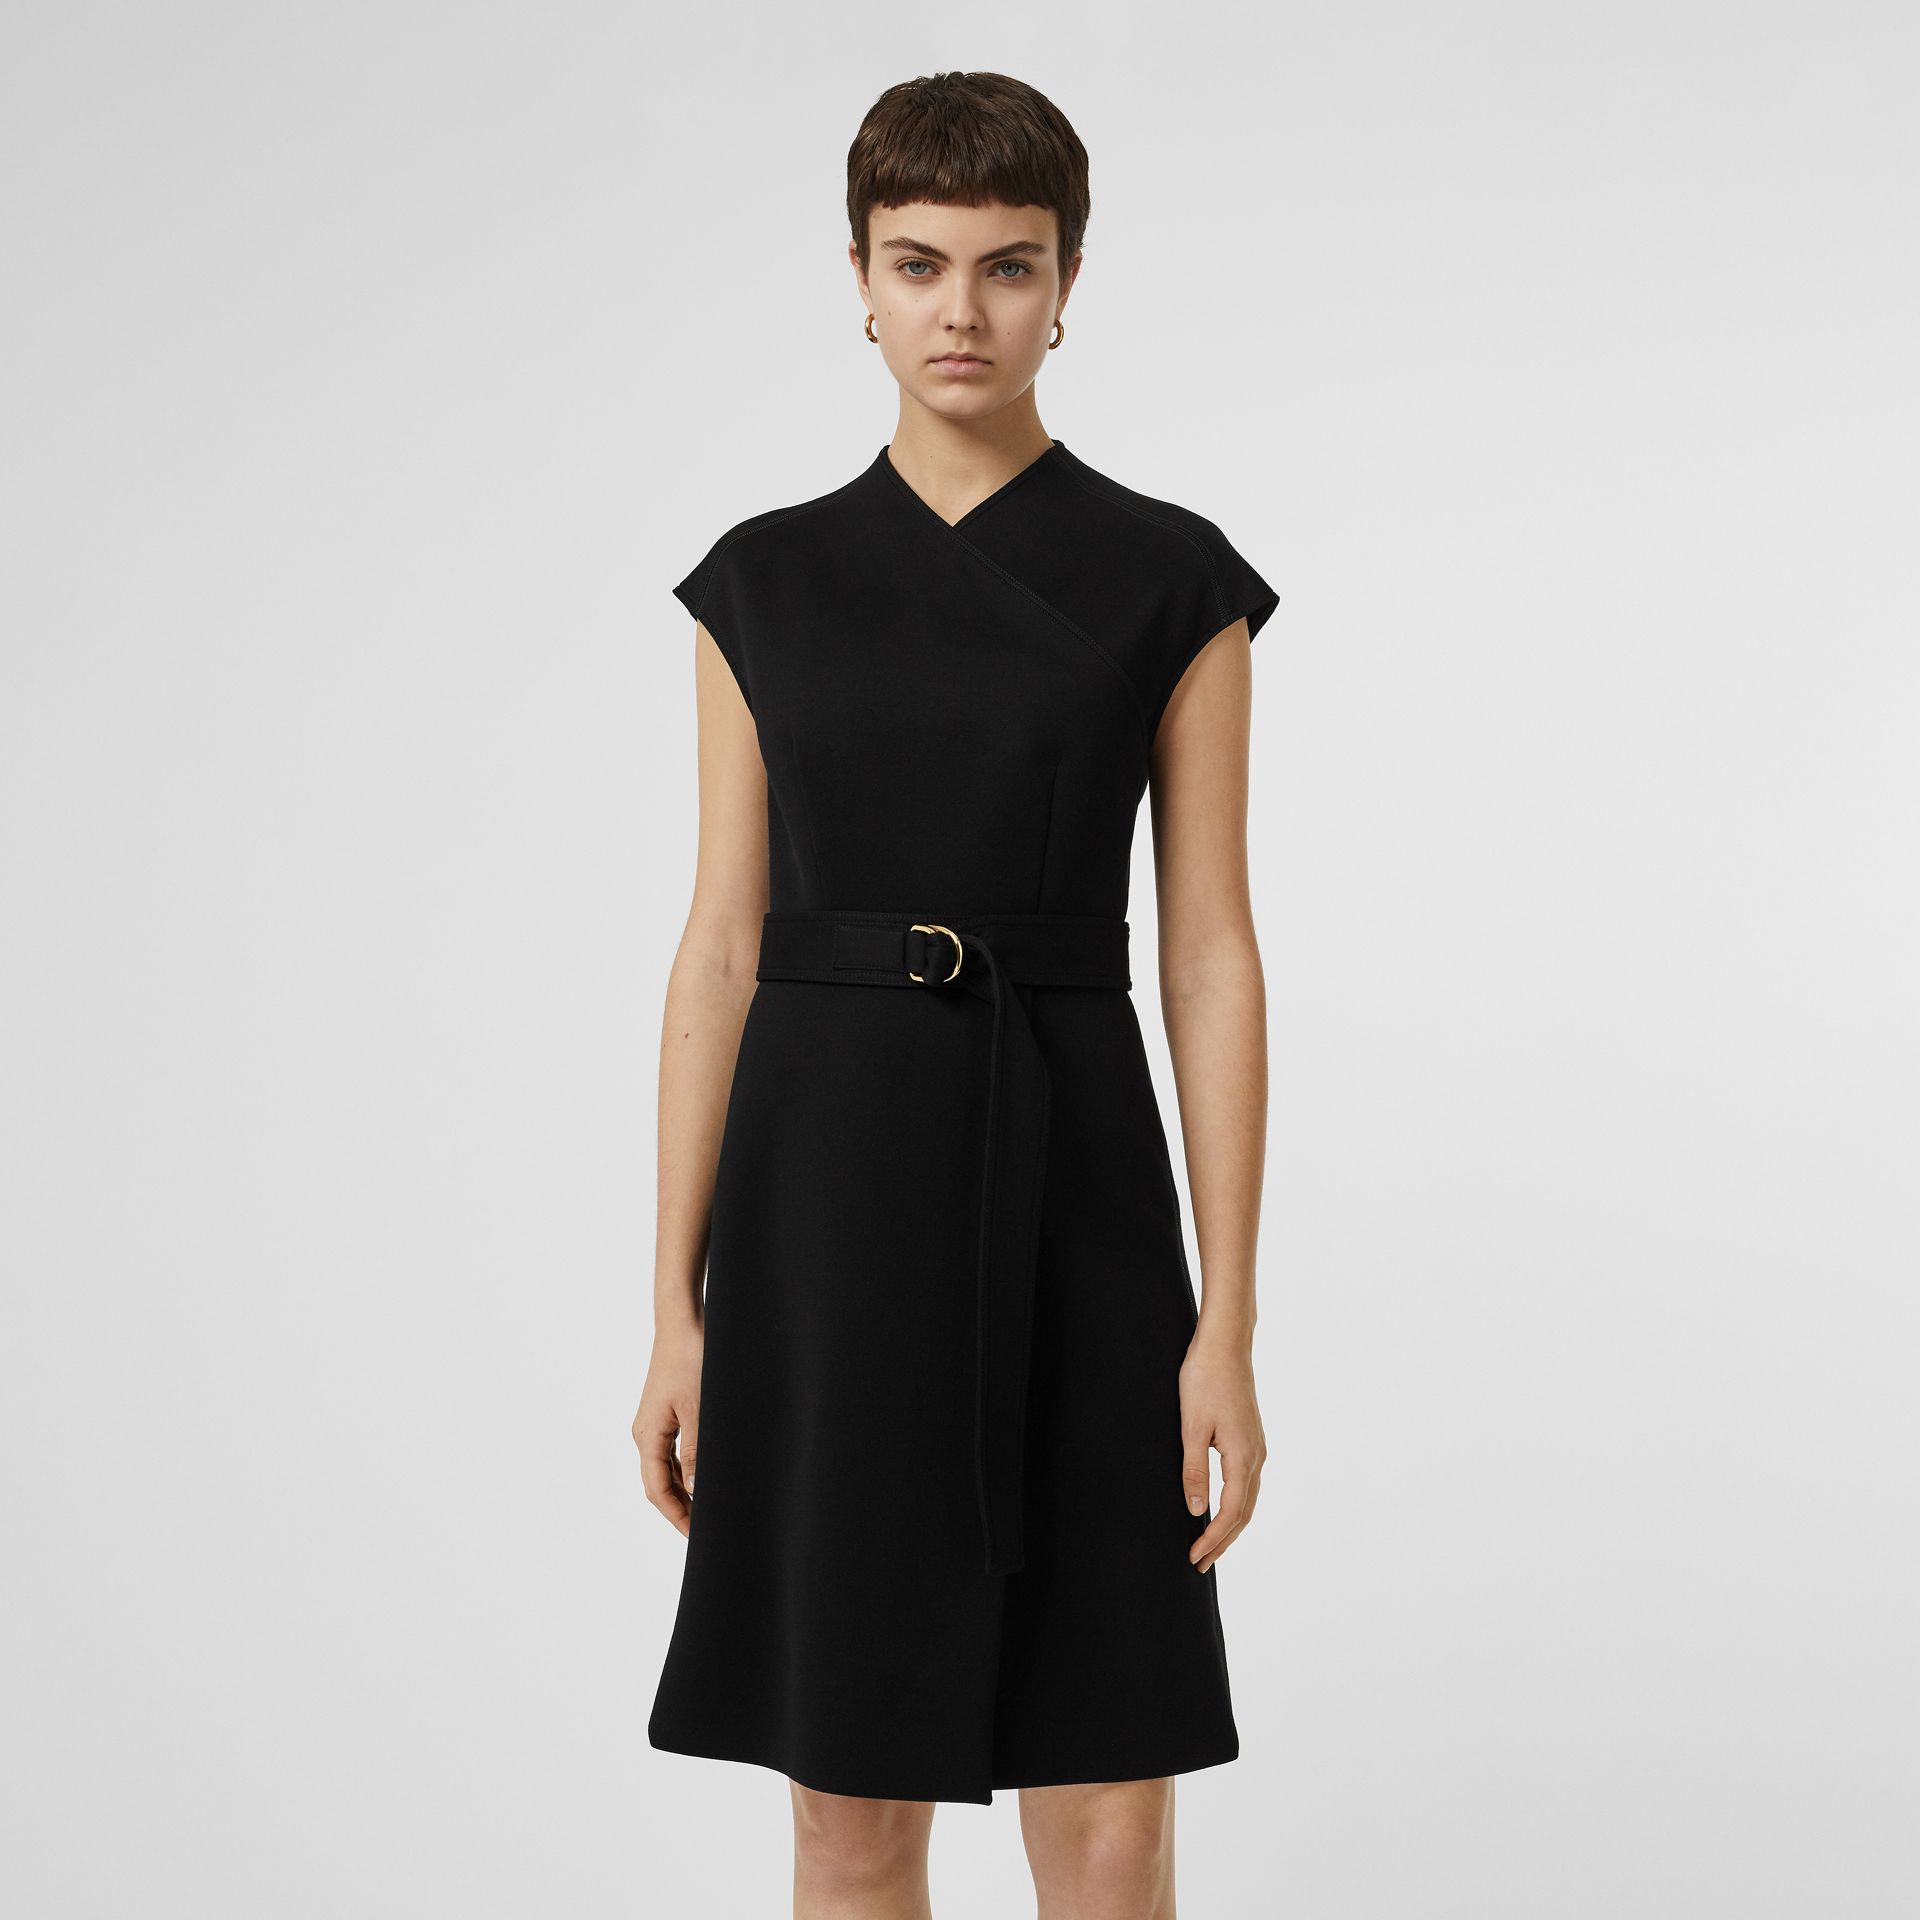 D-ring Detail Bonded Jersey Dress in Black - Women | Burberry - gallery image 5